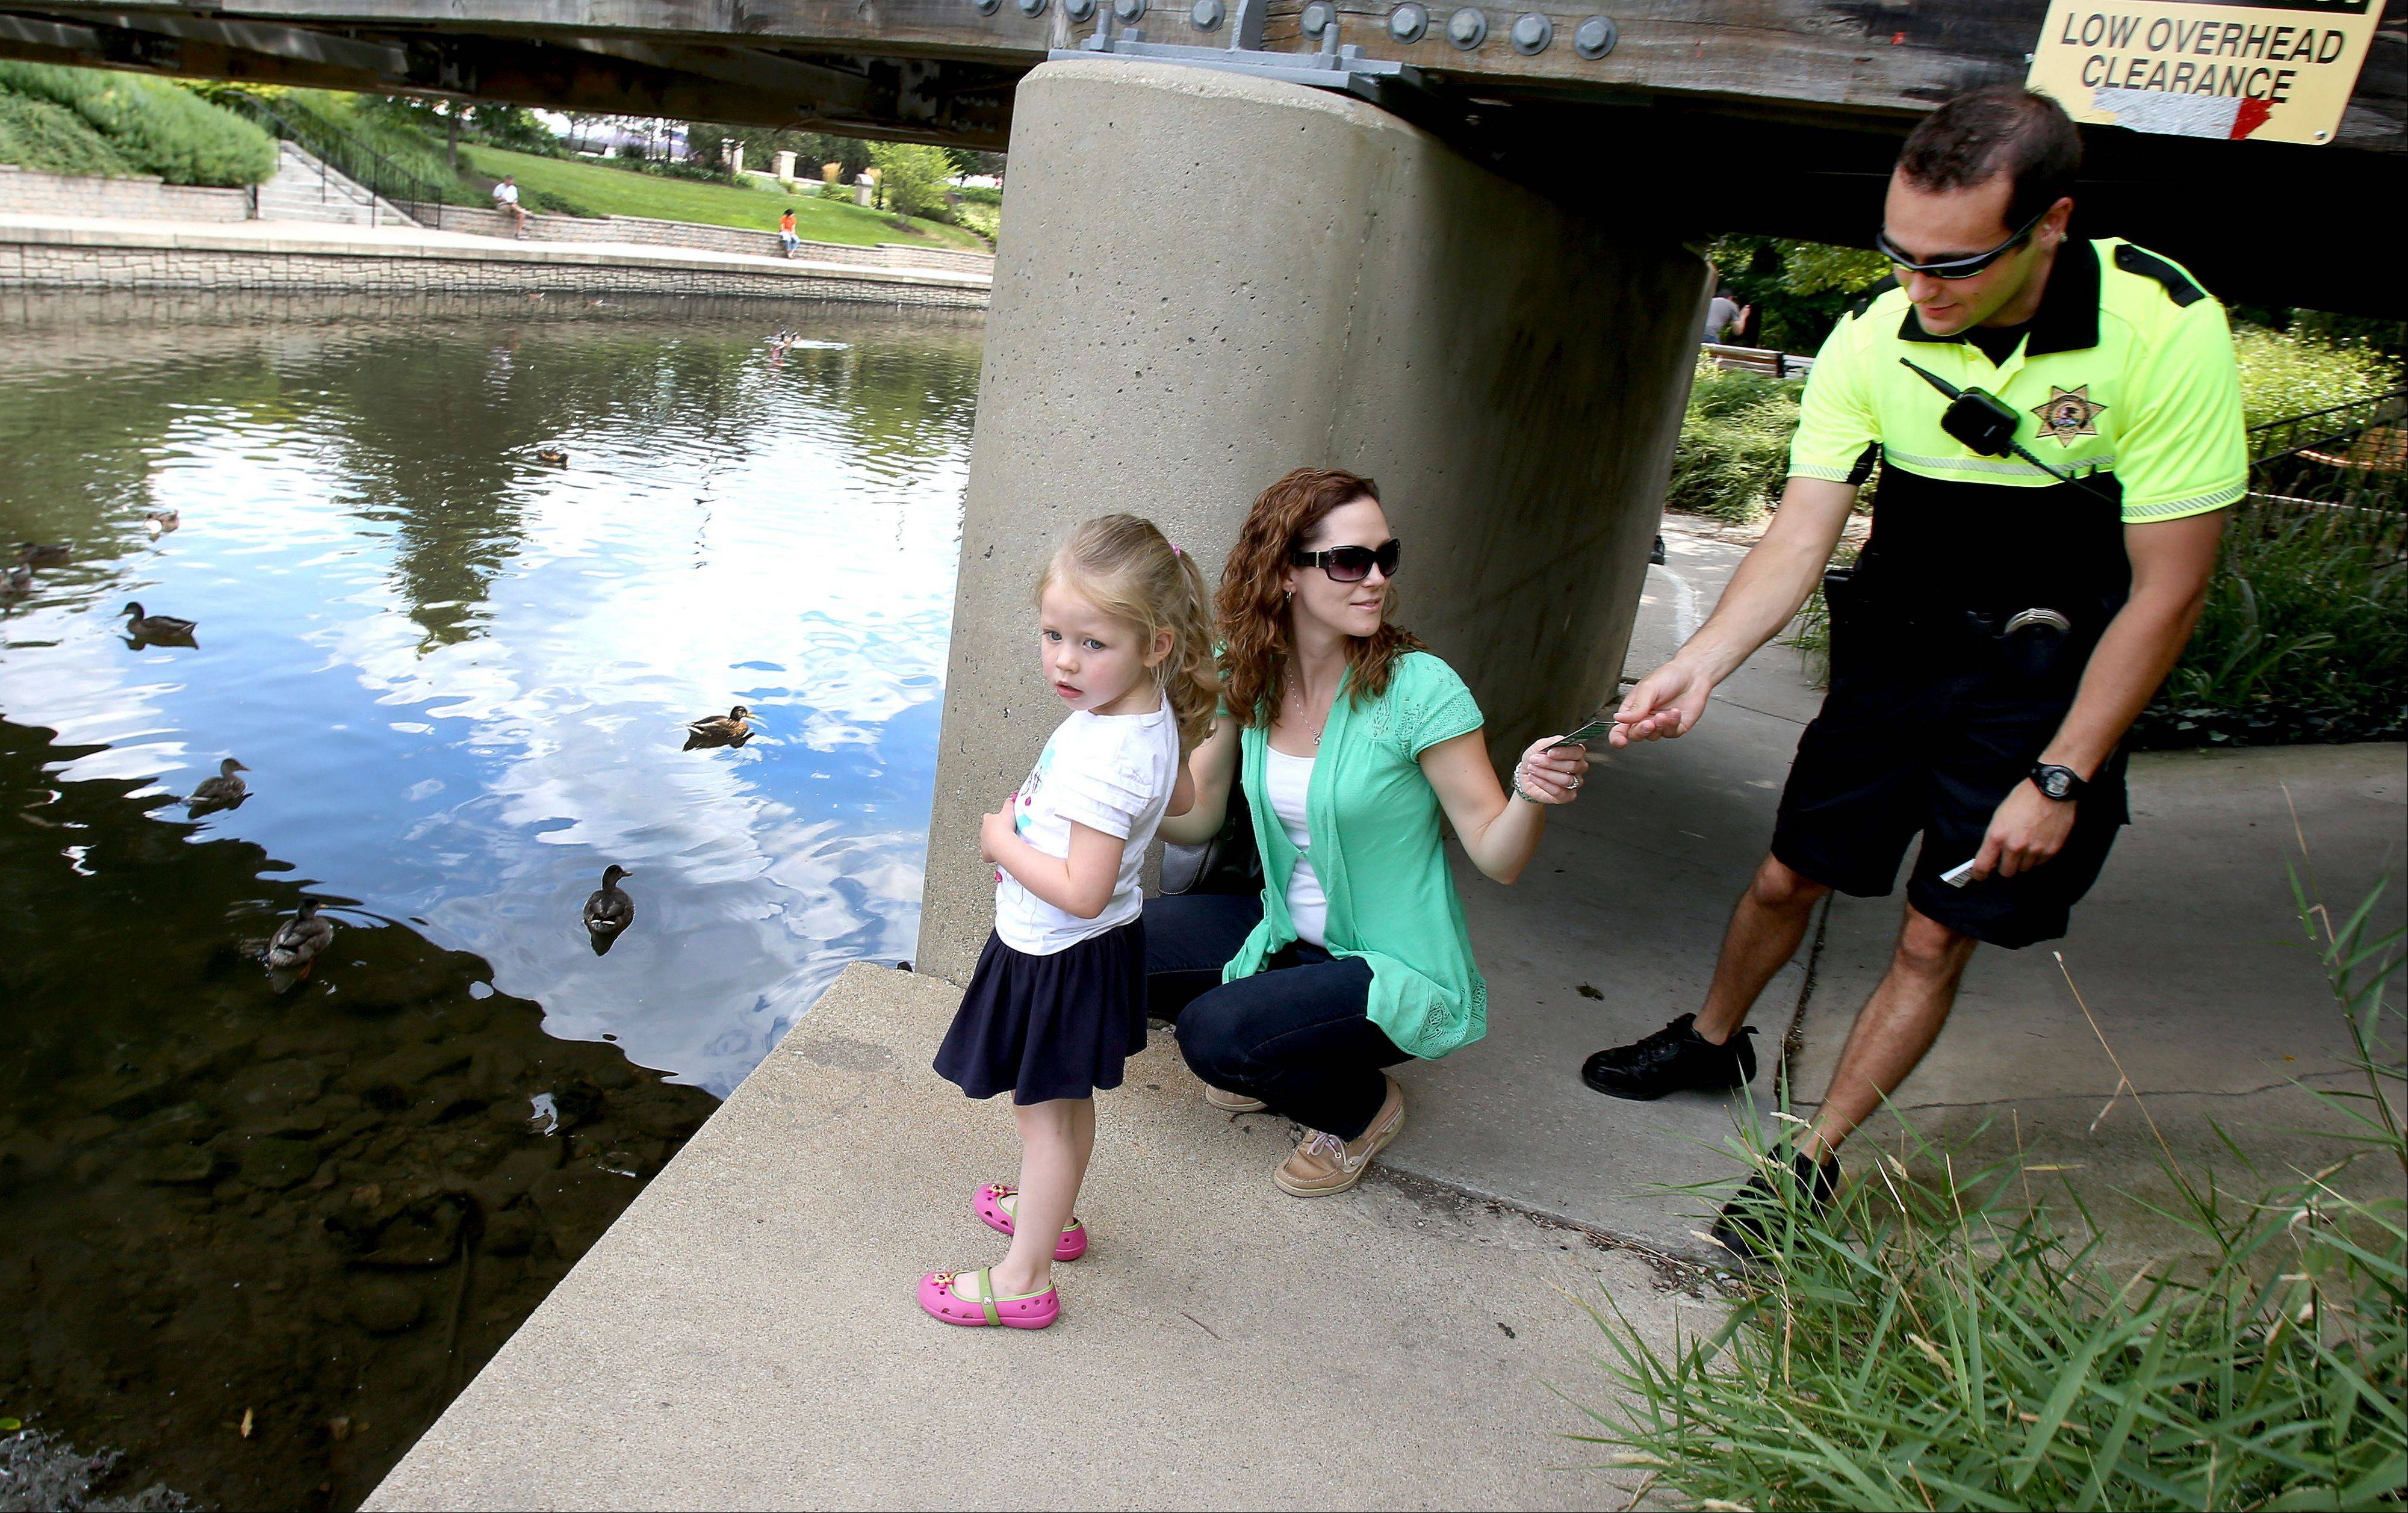 Naperville Park District police officer Patrick Ryan gives Beth Louthain of Naperville a card, shown below, that reminds people not to feed the wildlife. Louthain was watching � but not feeding � the ducks with daughter Kendall, 4, along the Riverwalk.